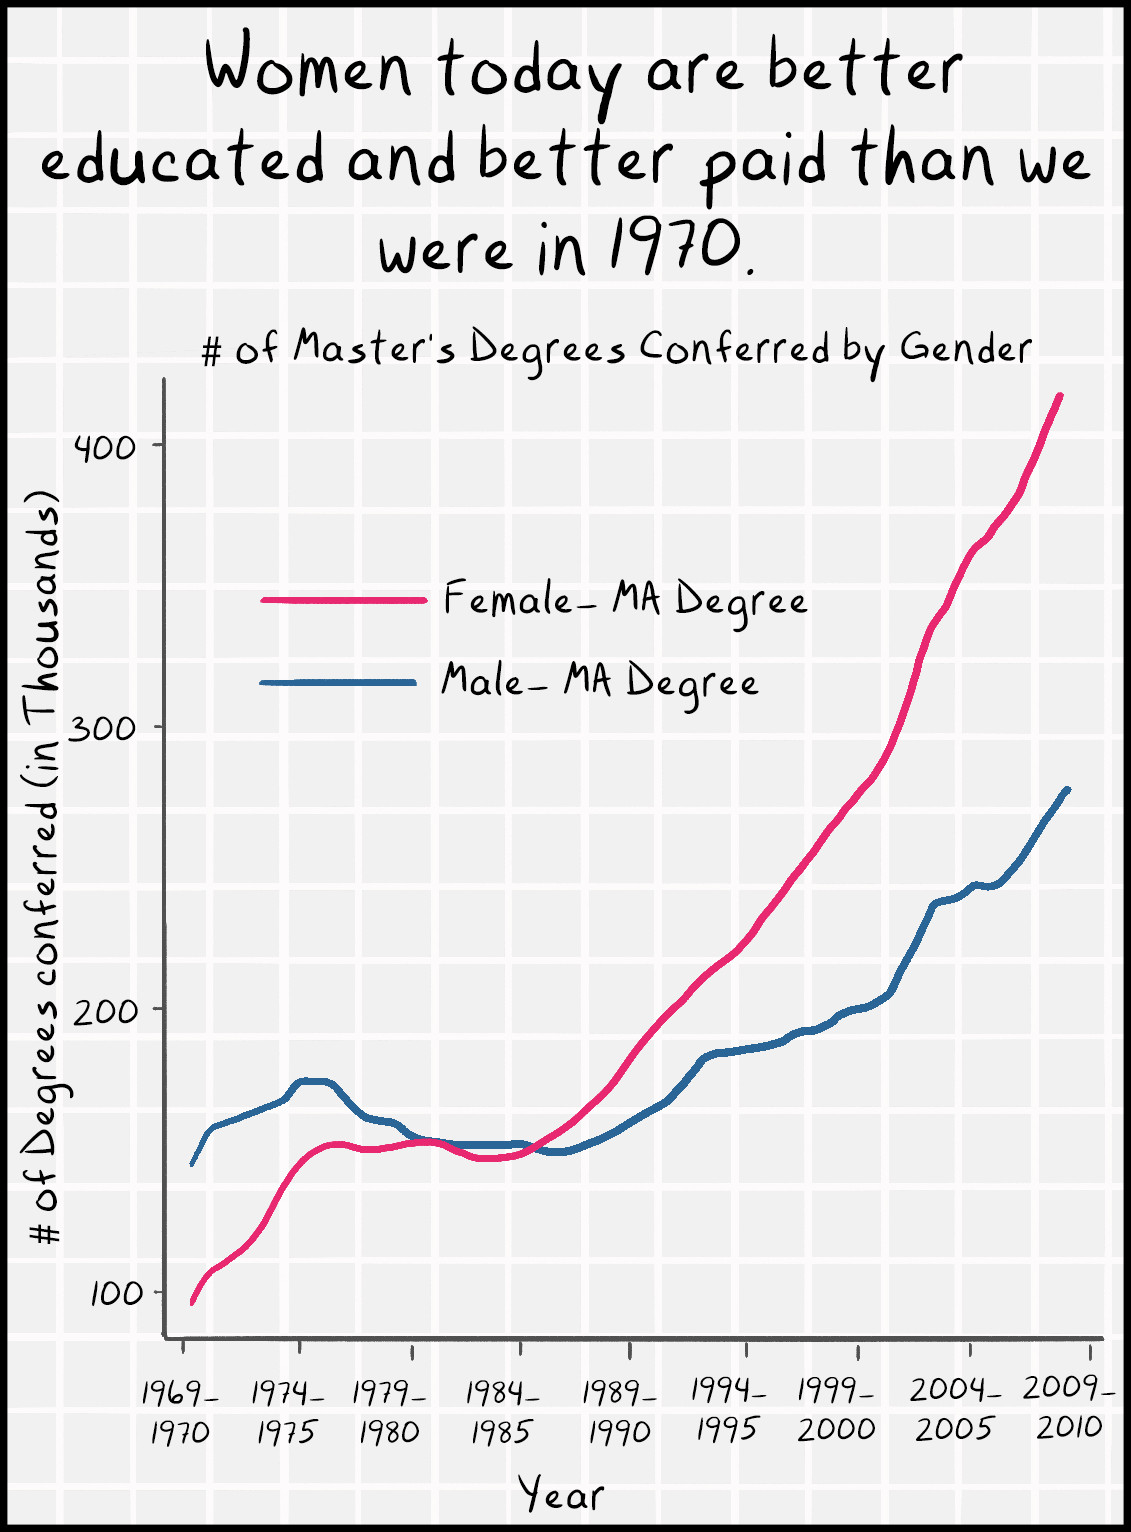 Women today are better educated and petter paid than we were in 1970.